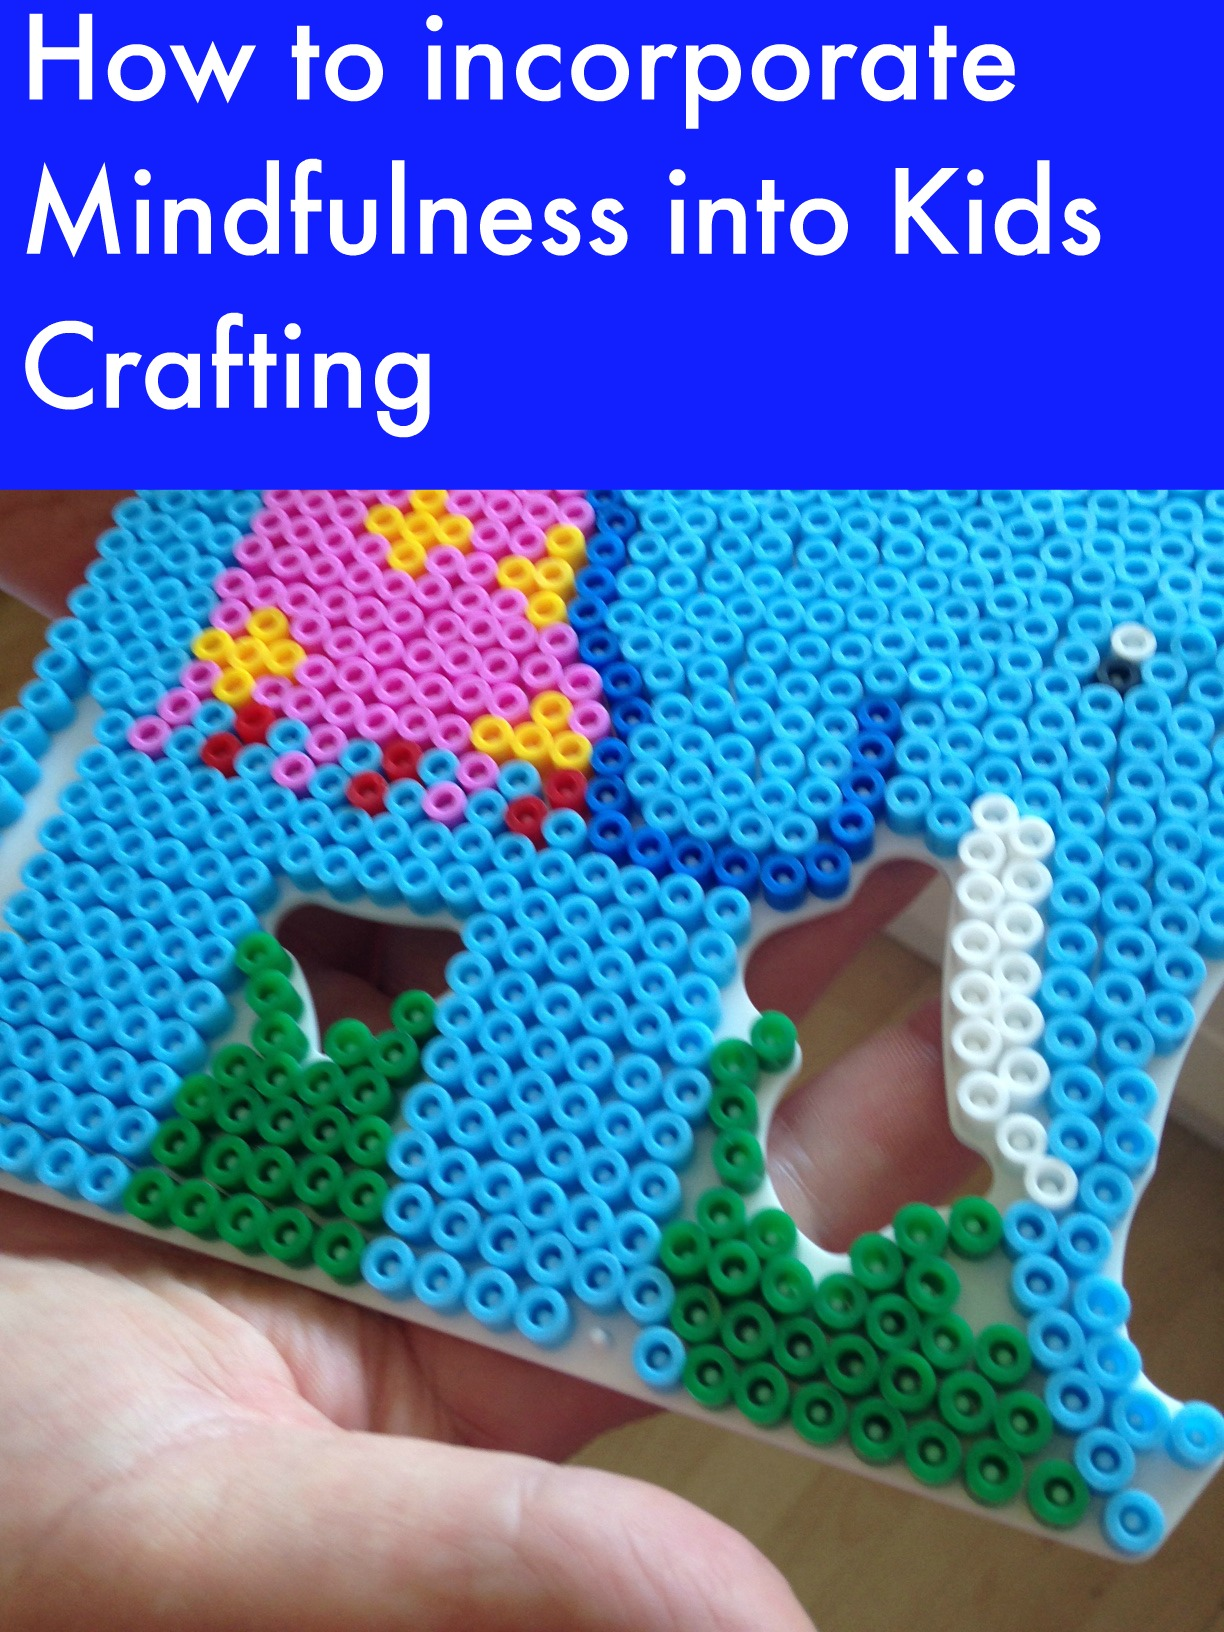 How to incorporate Mindfulness into Kids Crafting